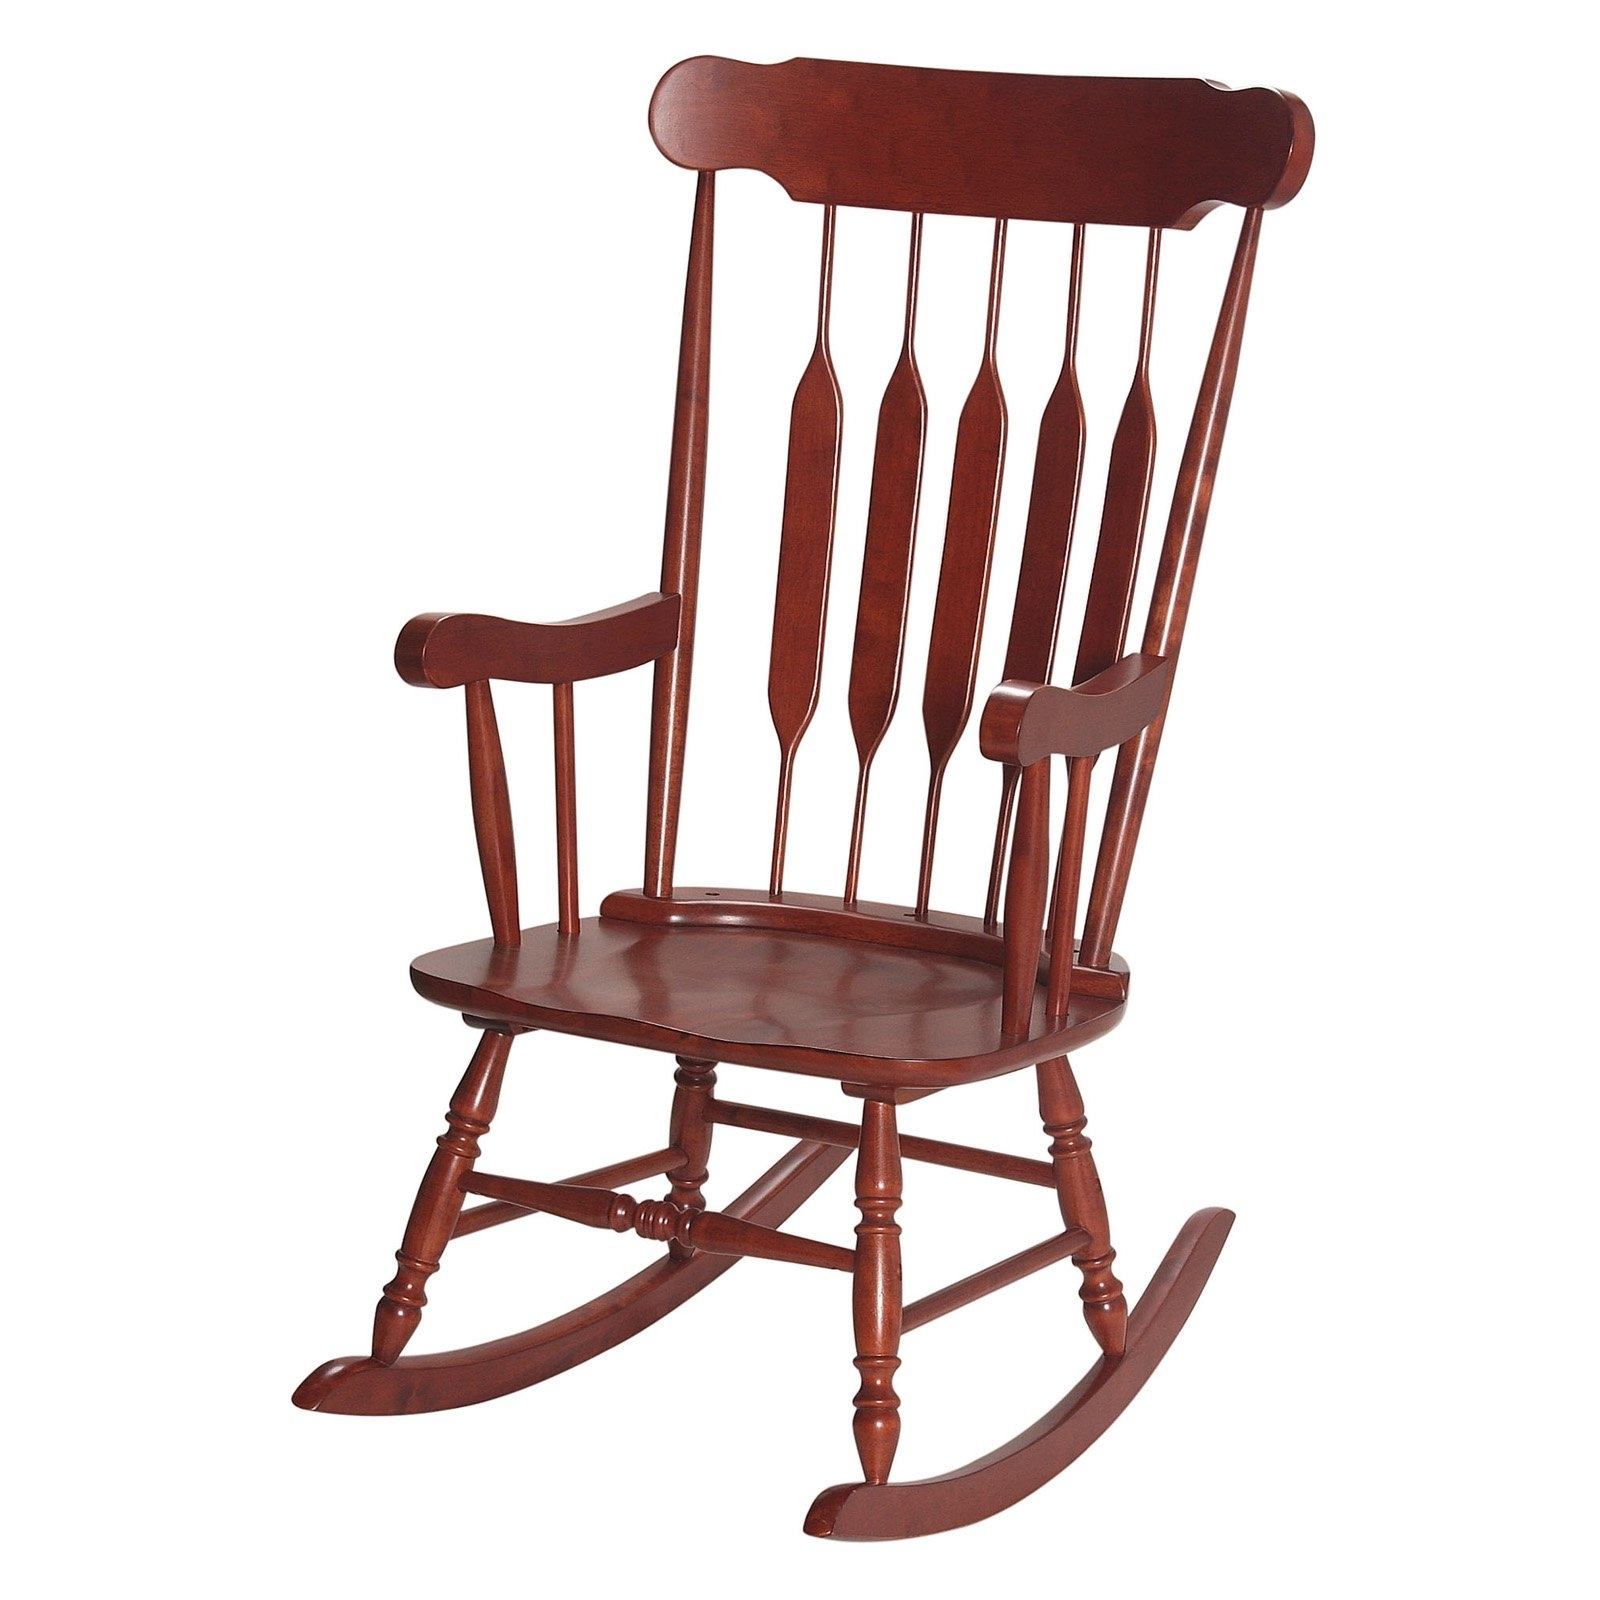 Famous Rocking Chairs At Wayfair Throughout Gift Mark Adult Rocking Chair – Cherry – Walmart (View 4 of 20)